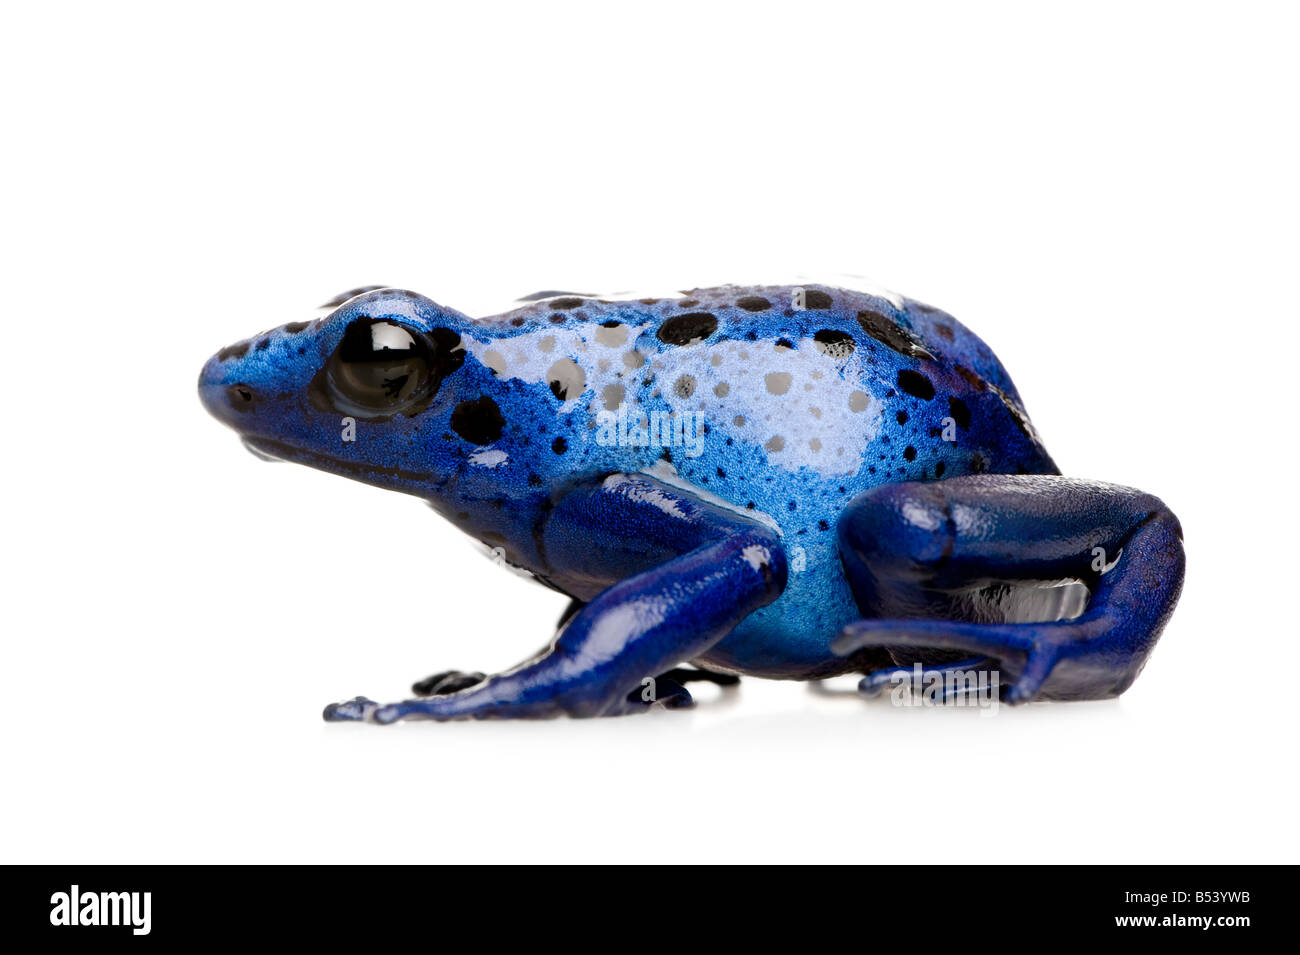 Dendrobates azureus in front of a white background - Stock Image